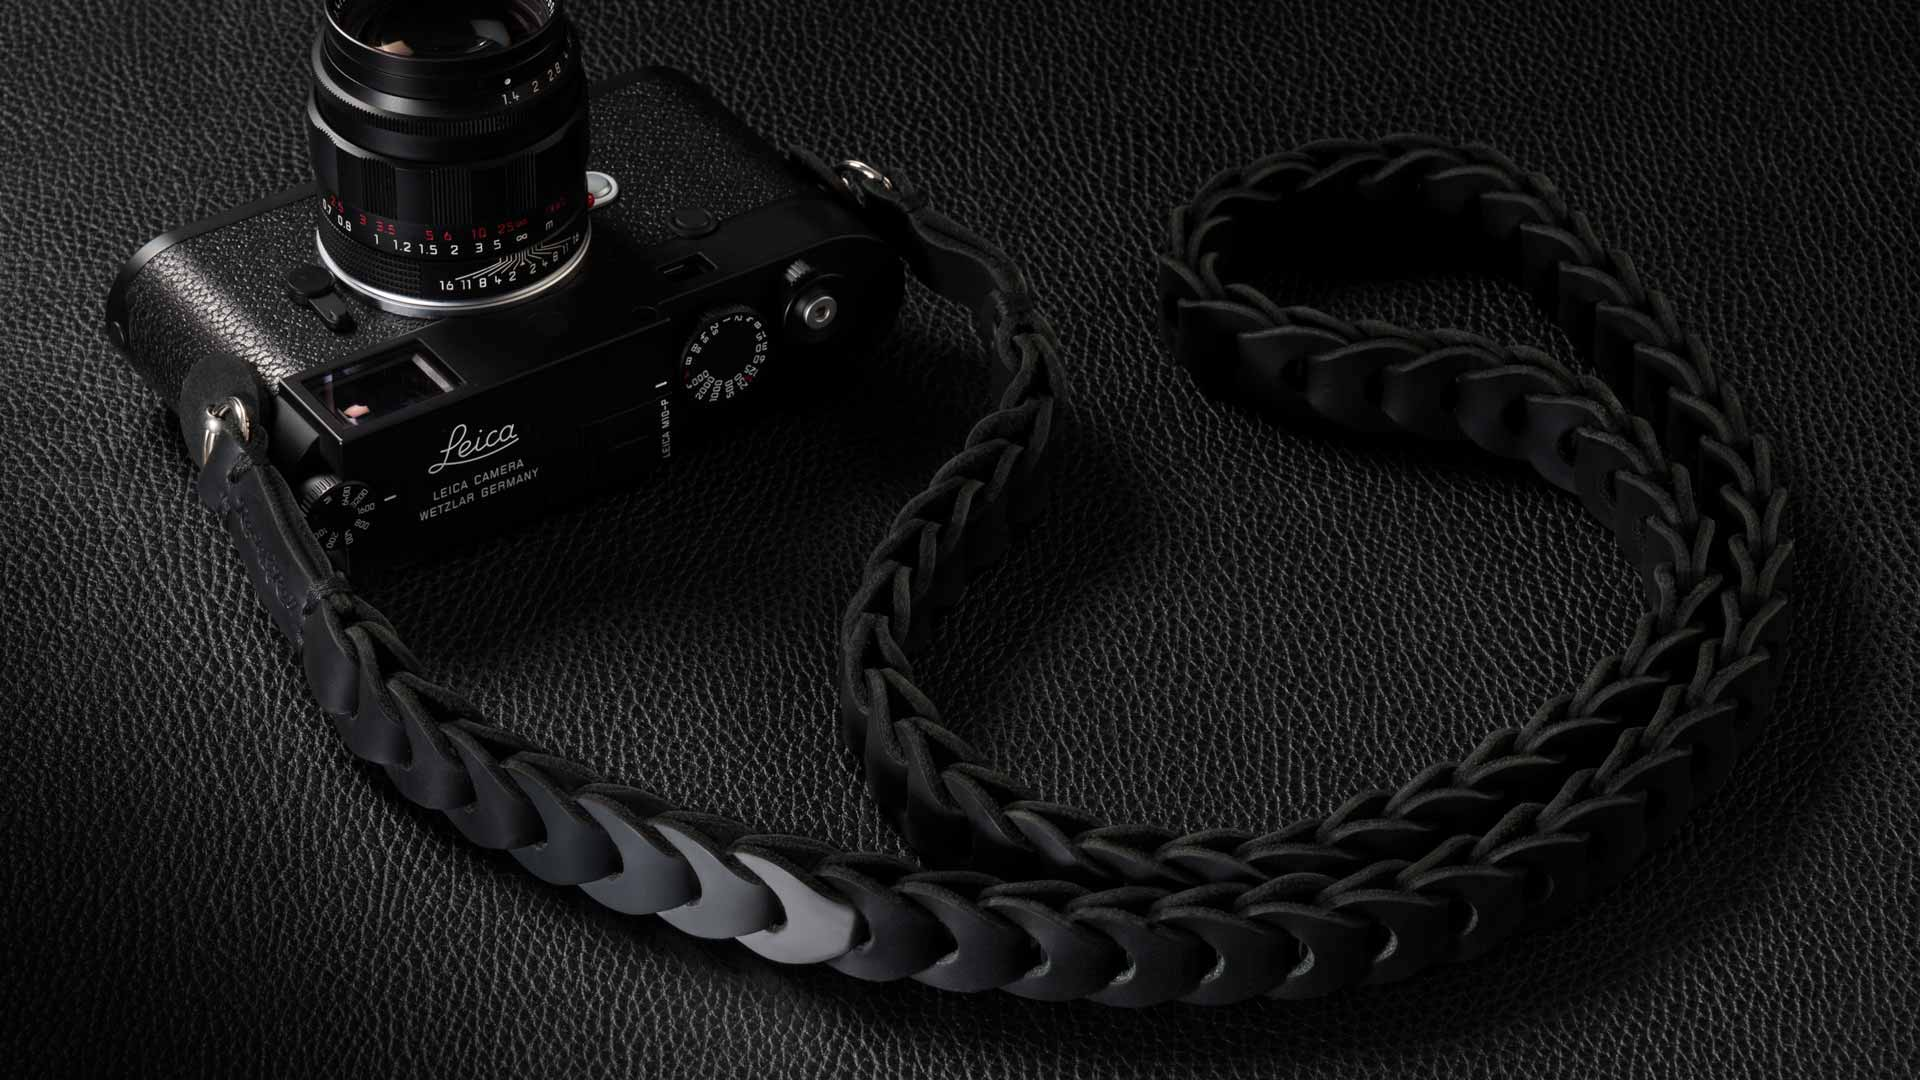 leica m strap, leather camera strap, handmade leather camera strap, vintage camera straps, leica camera strap, handmade camera strap, mirrorless camera strap